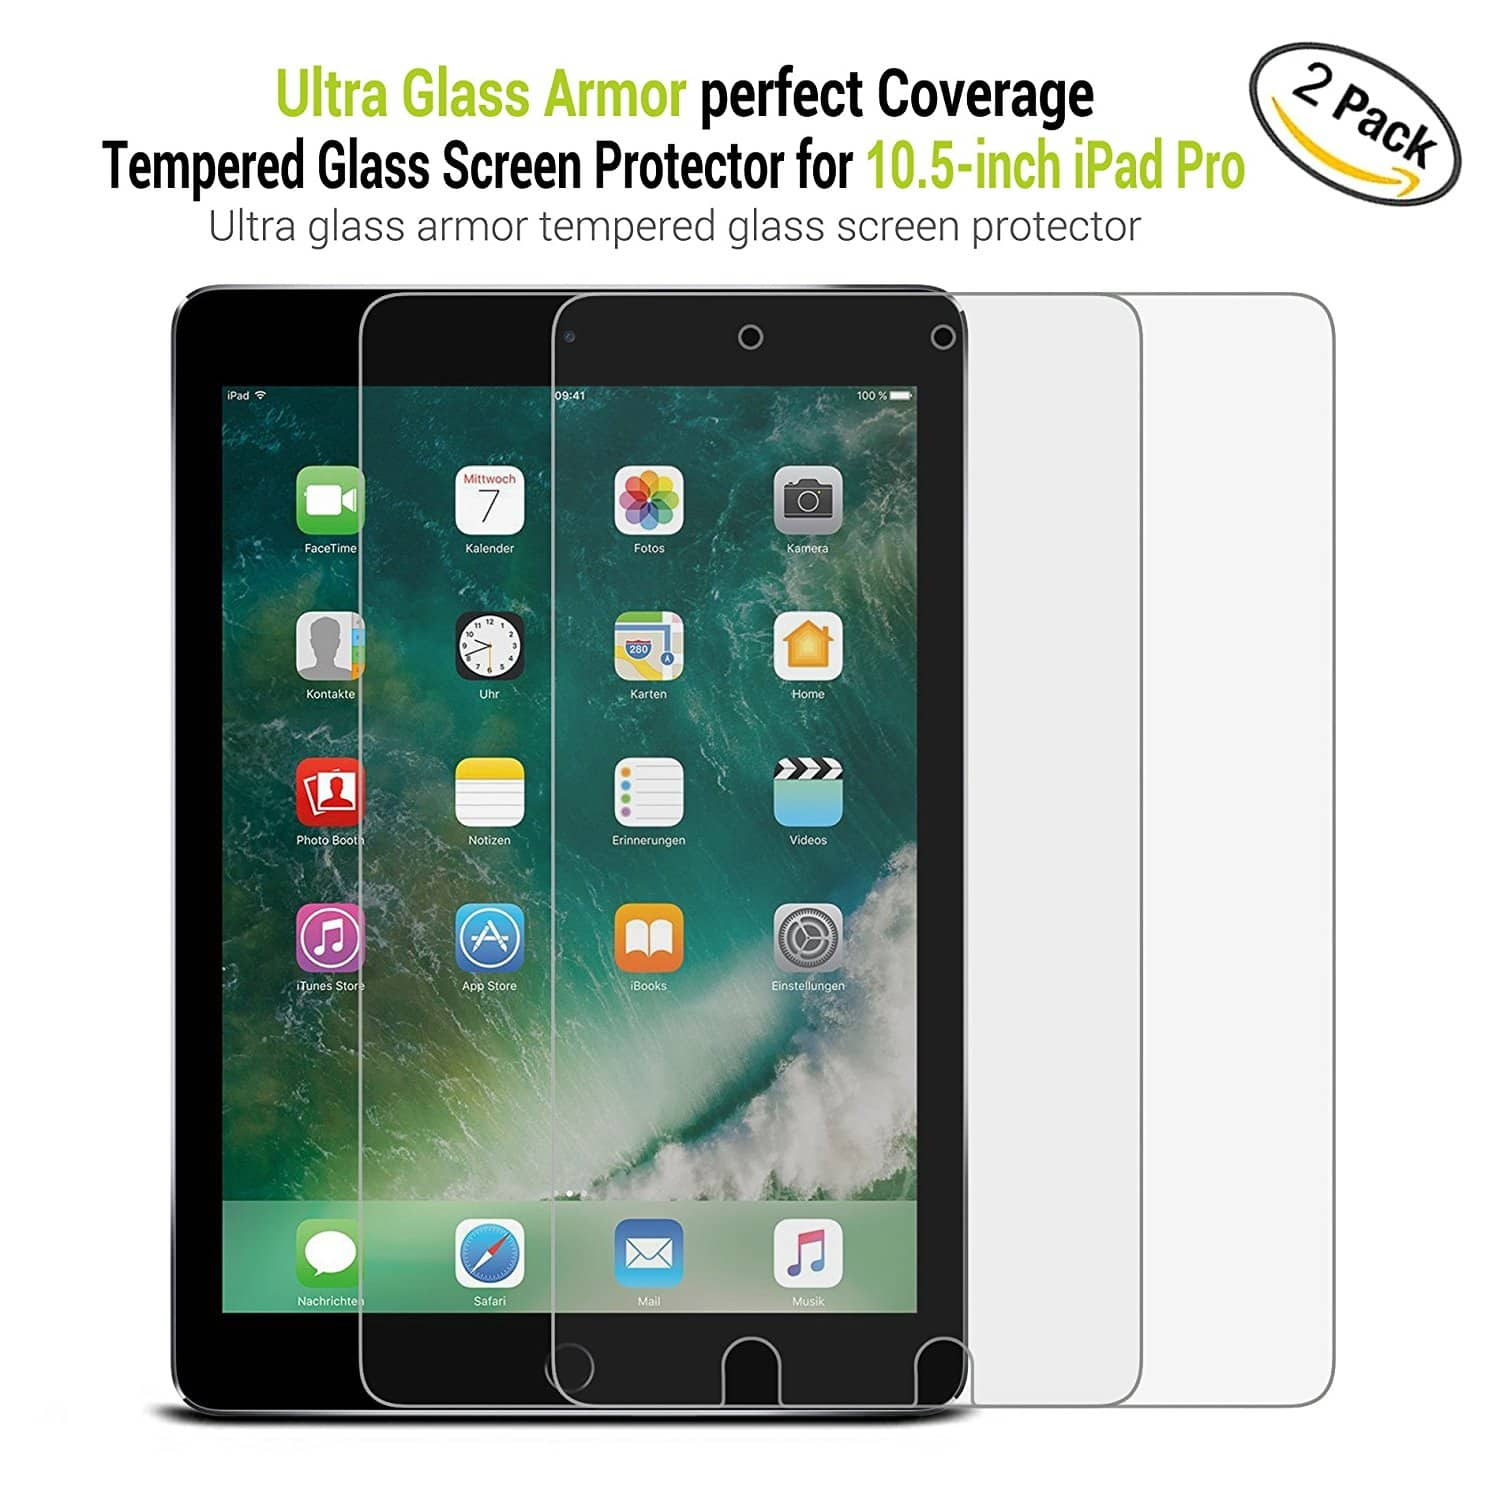 56% Off ZeroLemon 2-Pack iPad Pro 10.5 Tempered Glass Screen Protector $3.96 + Amazon Free Shipping